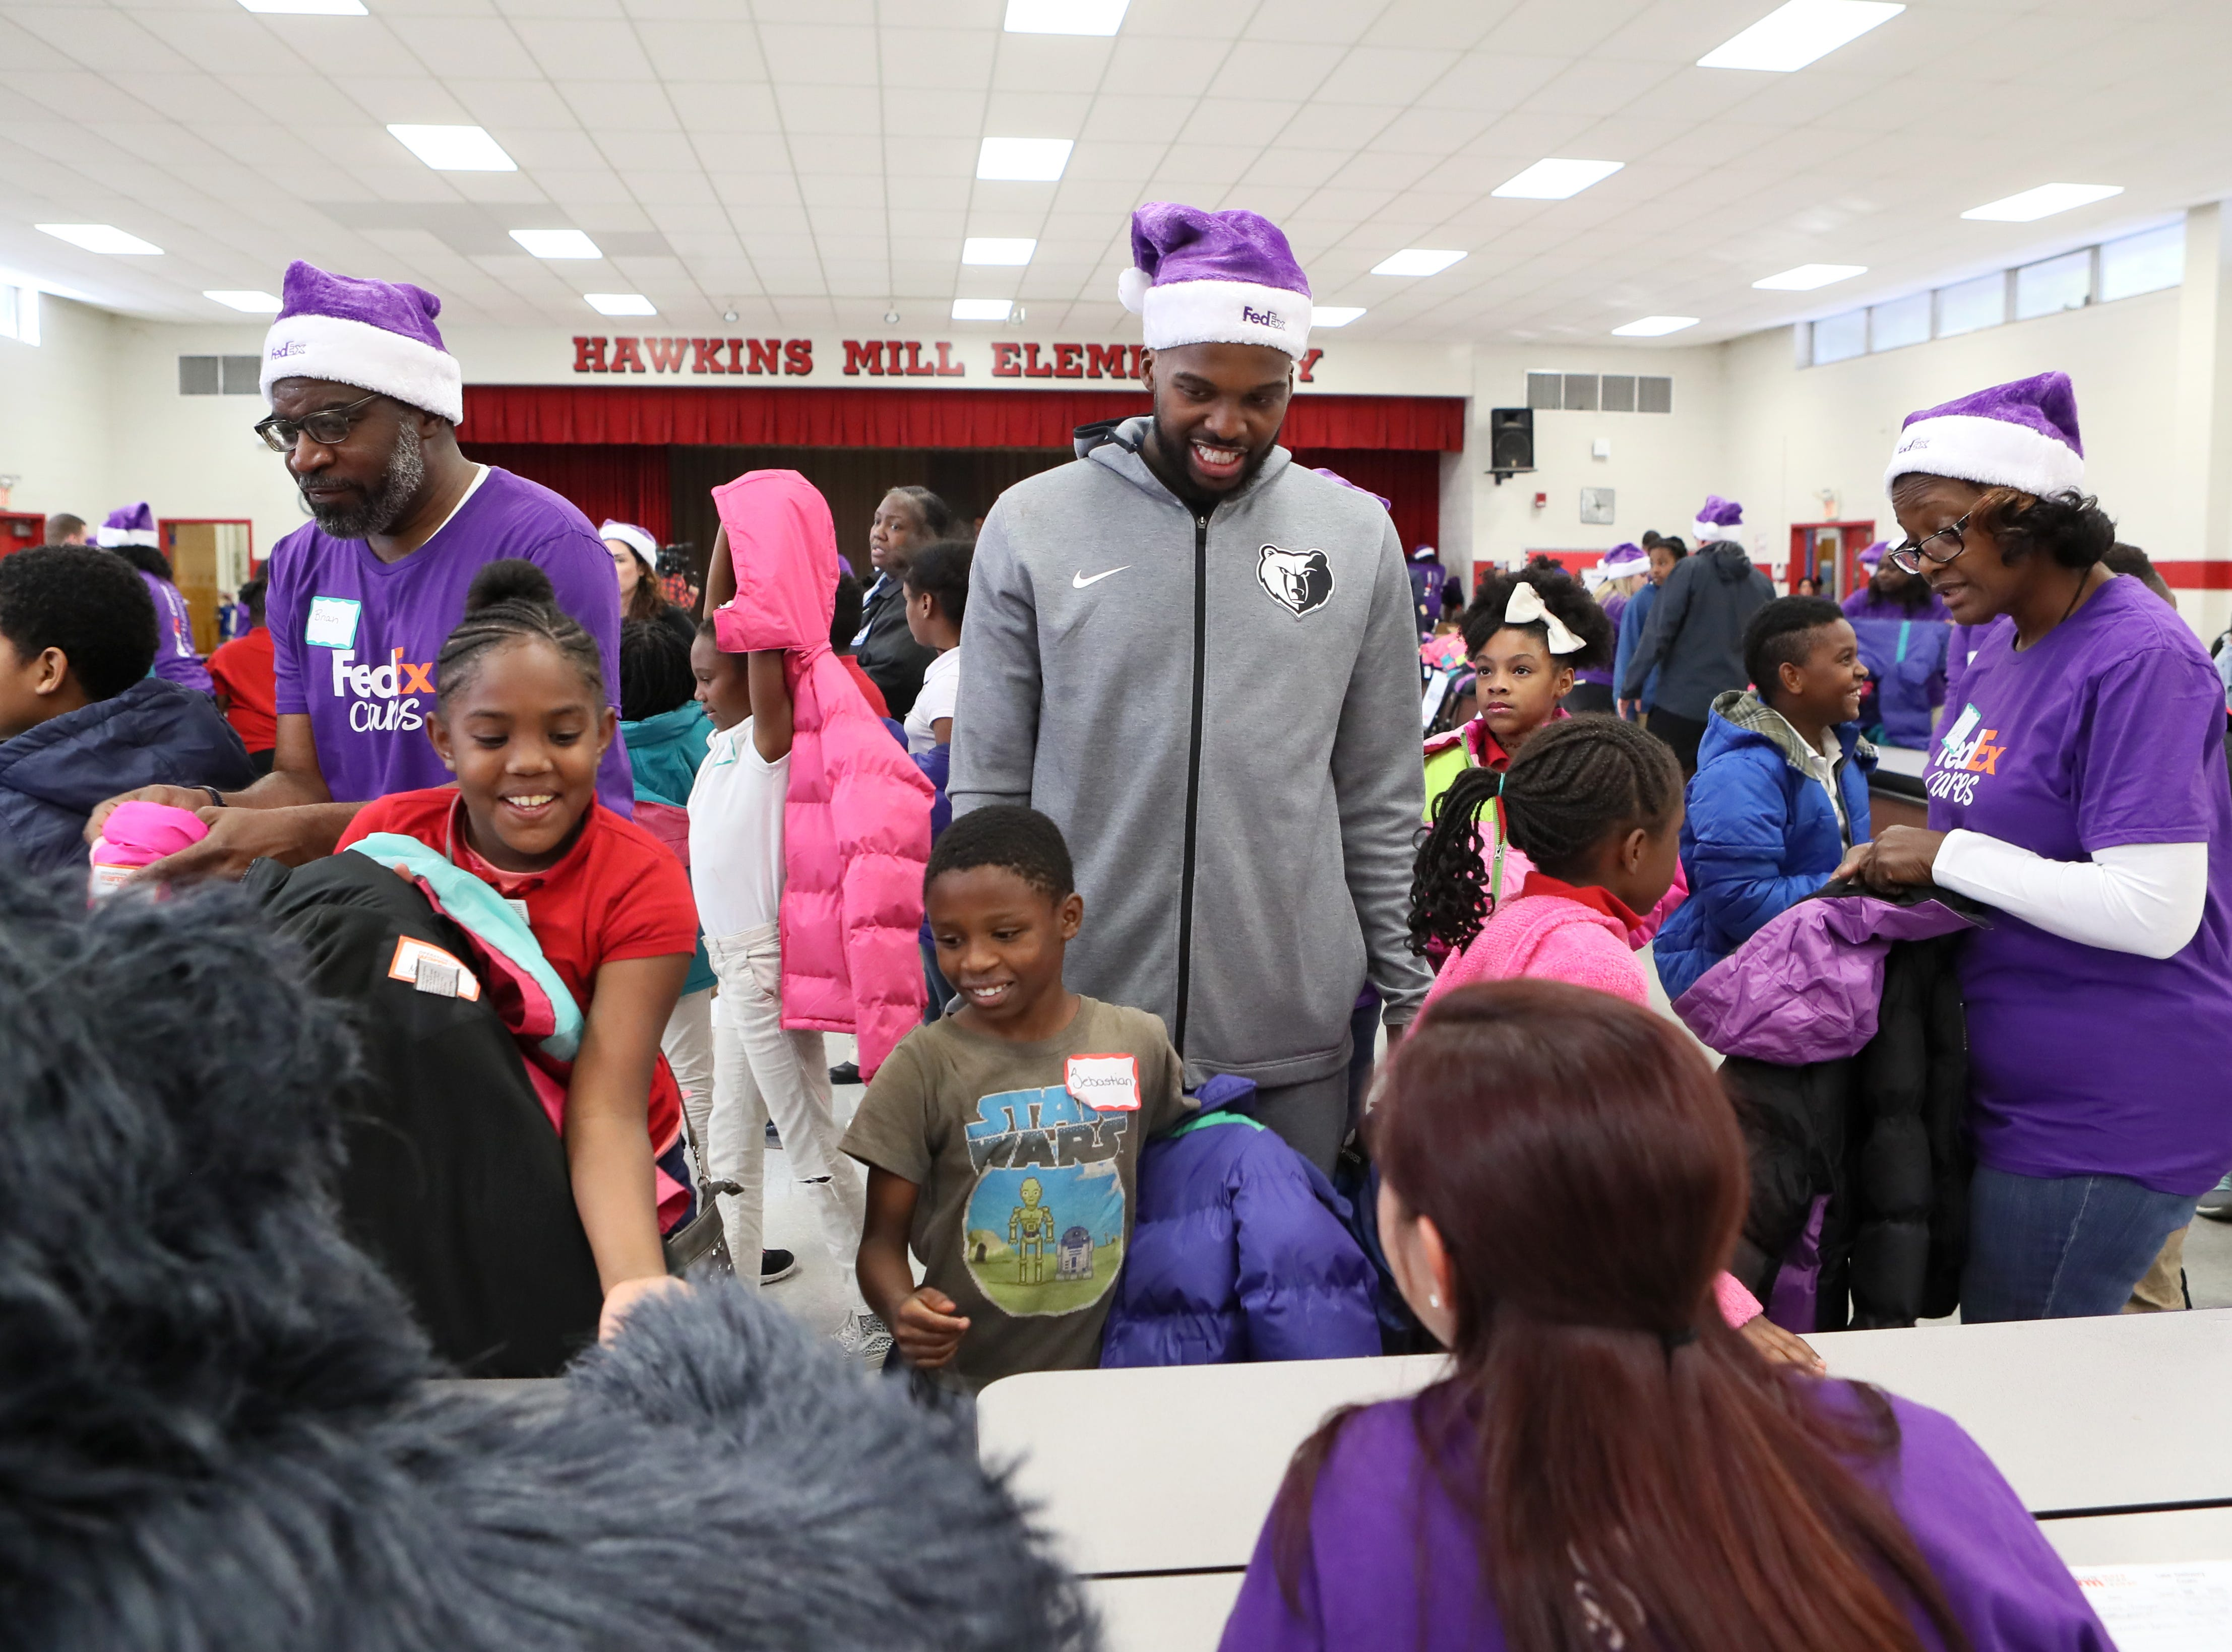 Memphis Grizzlies guard Shelvin Mack joins FedEx and Operation Warm to help surprise children with new coats at Hawkins Mill Elementary School on Thursday, Nov. 8, 2018.